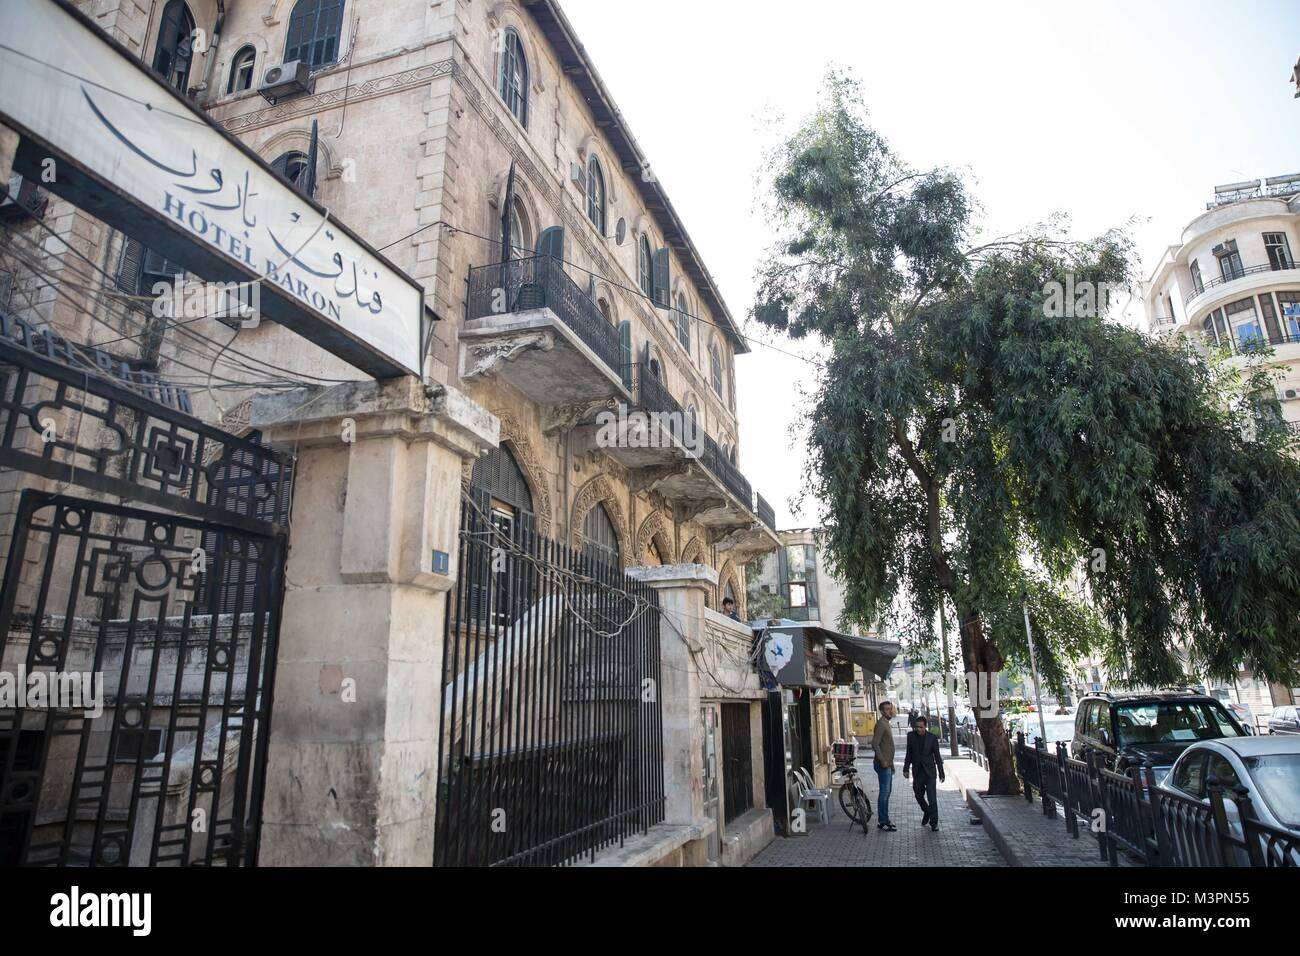 Aleppo, Syria. 2nd Nov, 2017. Aleppo's historic Baron Hotel was founded in 1911 by two Armenian brothers. Guests - Stock Image